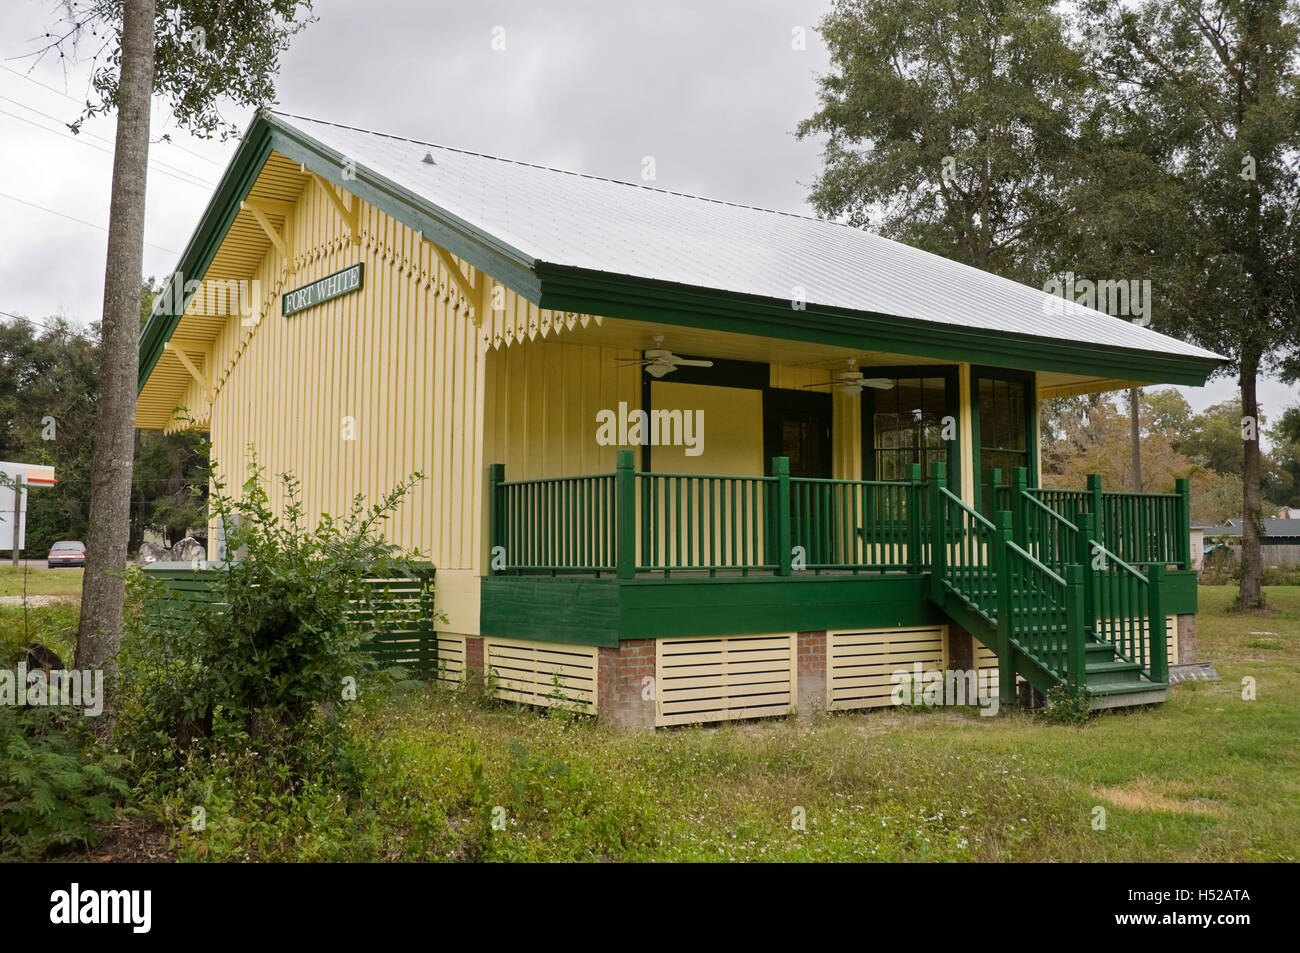 Train depot in small North Florida town of Fort White has been totally renovated. - Stock Image